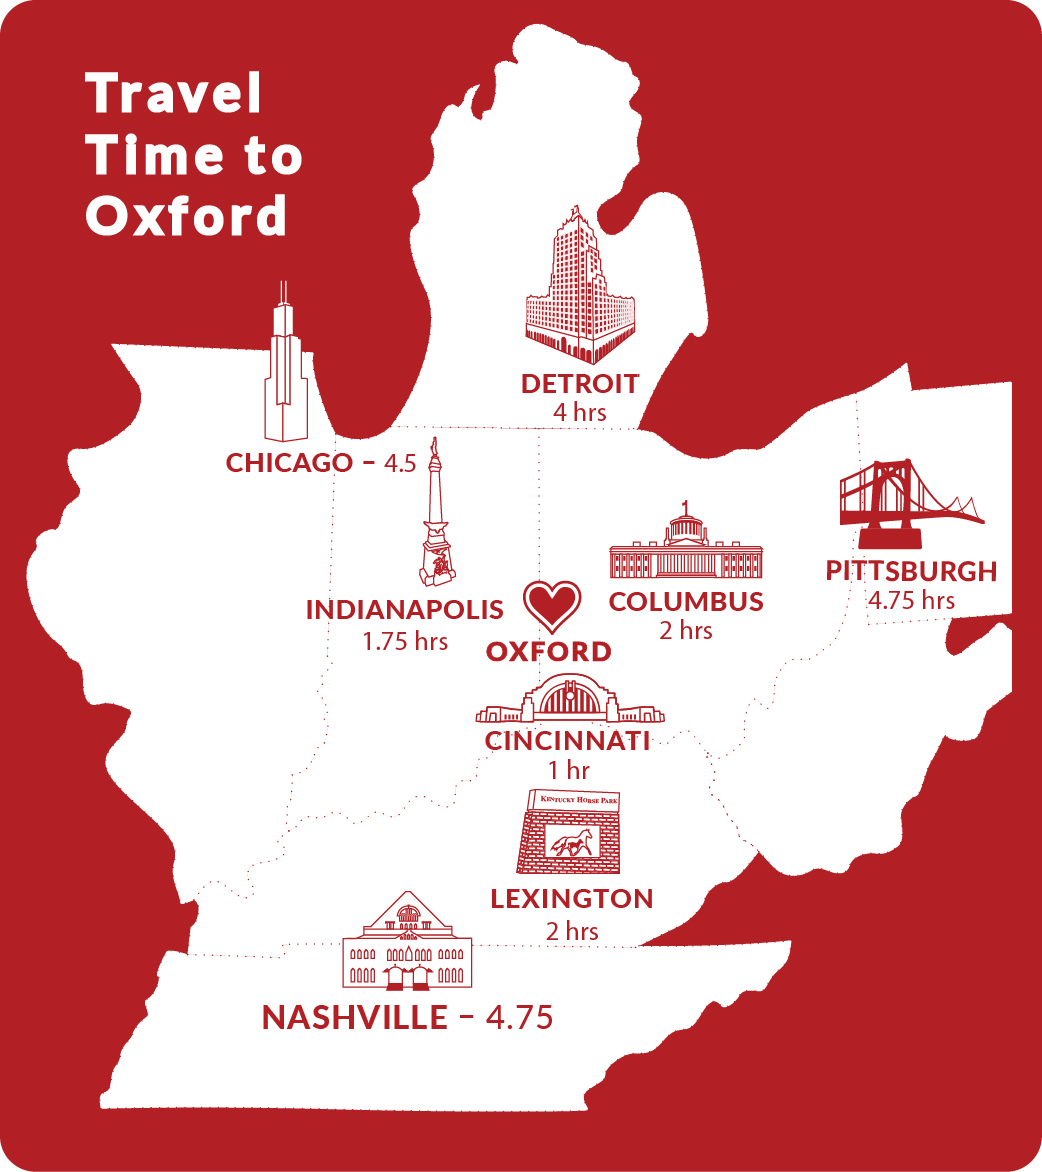 graphic of travel times to oxford from nearby ohio landmarks